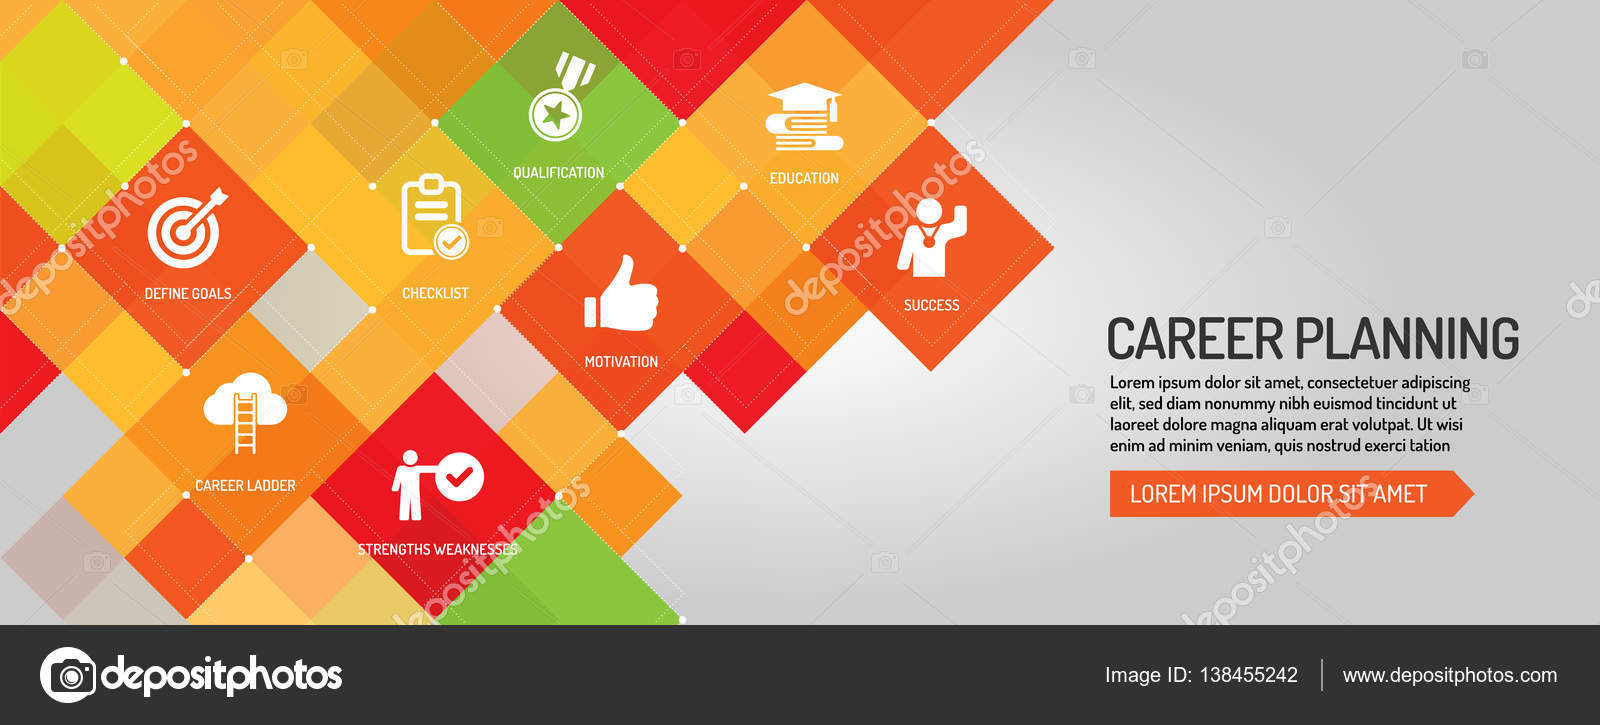 career planning banner stock vector copy garagestock  career planning banner stock illustration